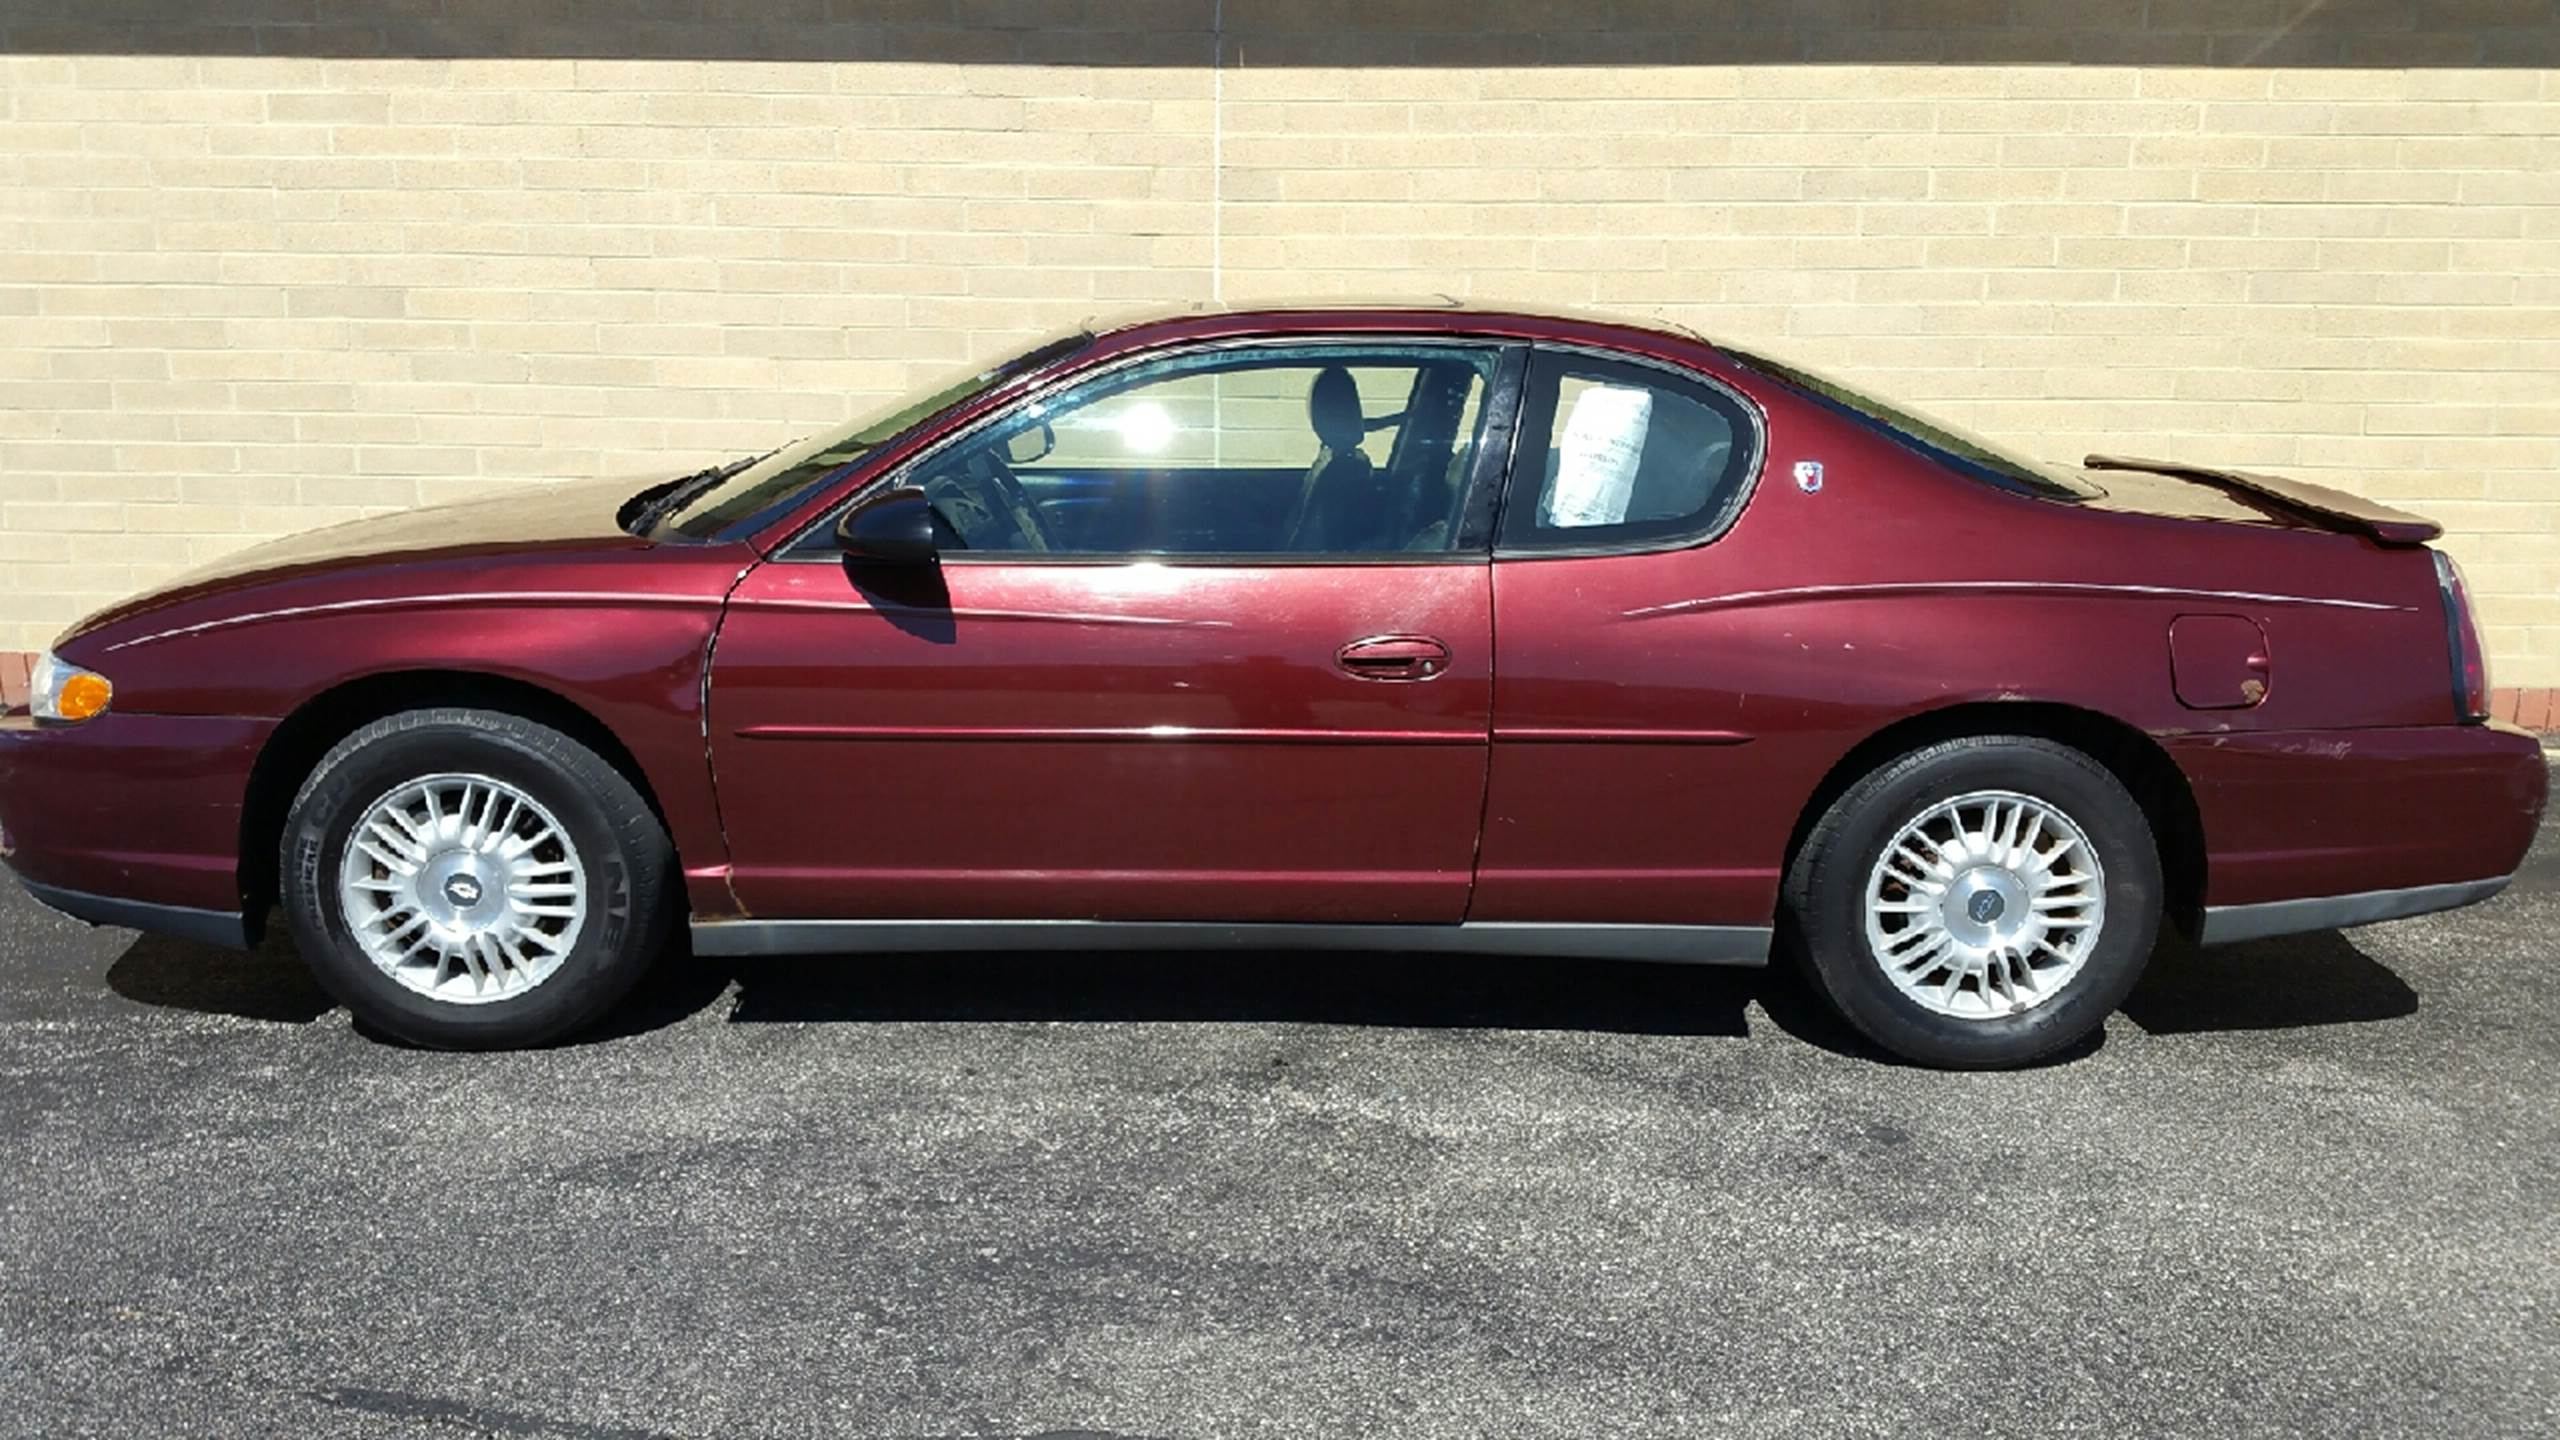 2000 Chevrolet Monte Carlo for sale in Elyria, OH